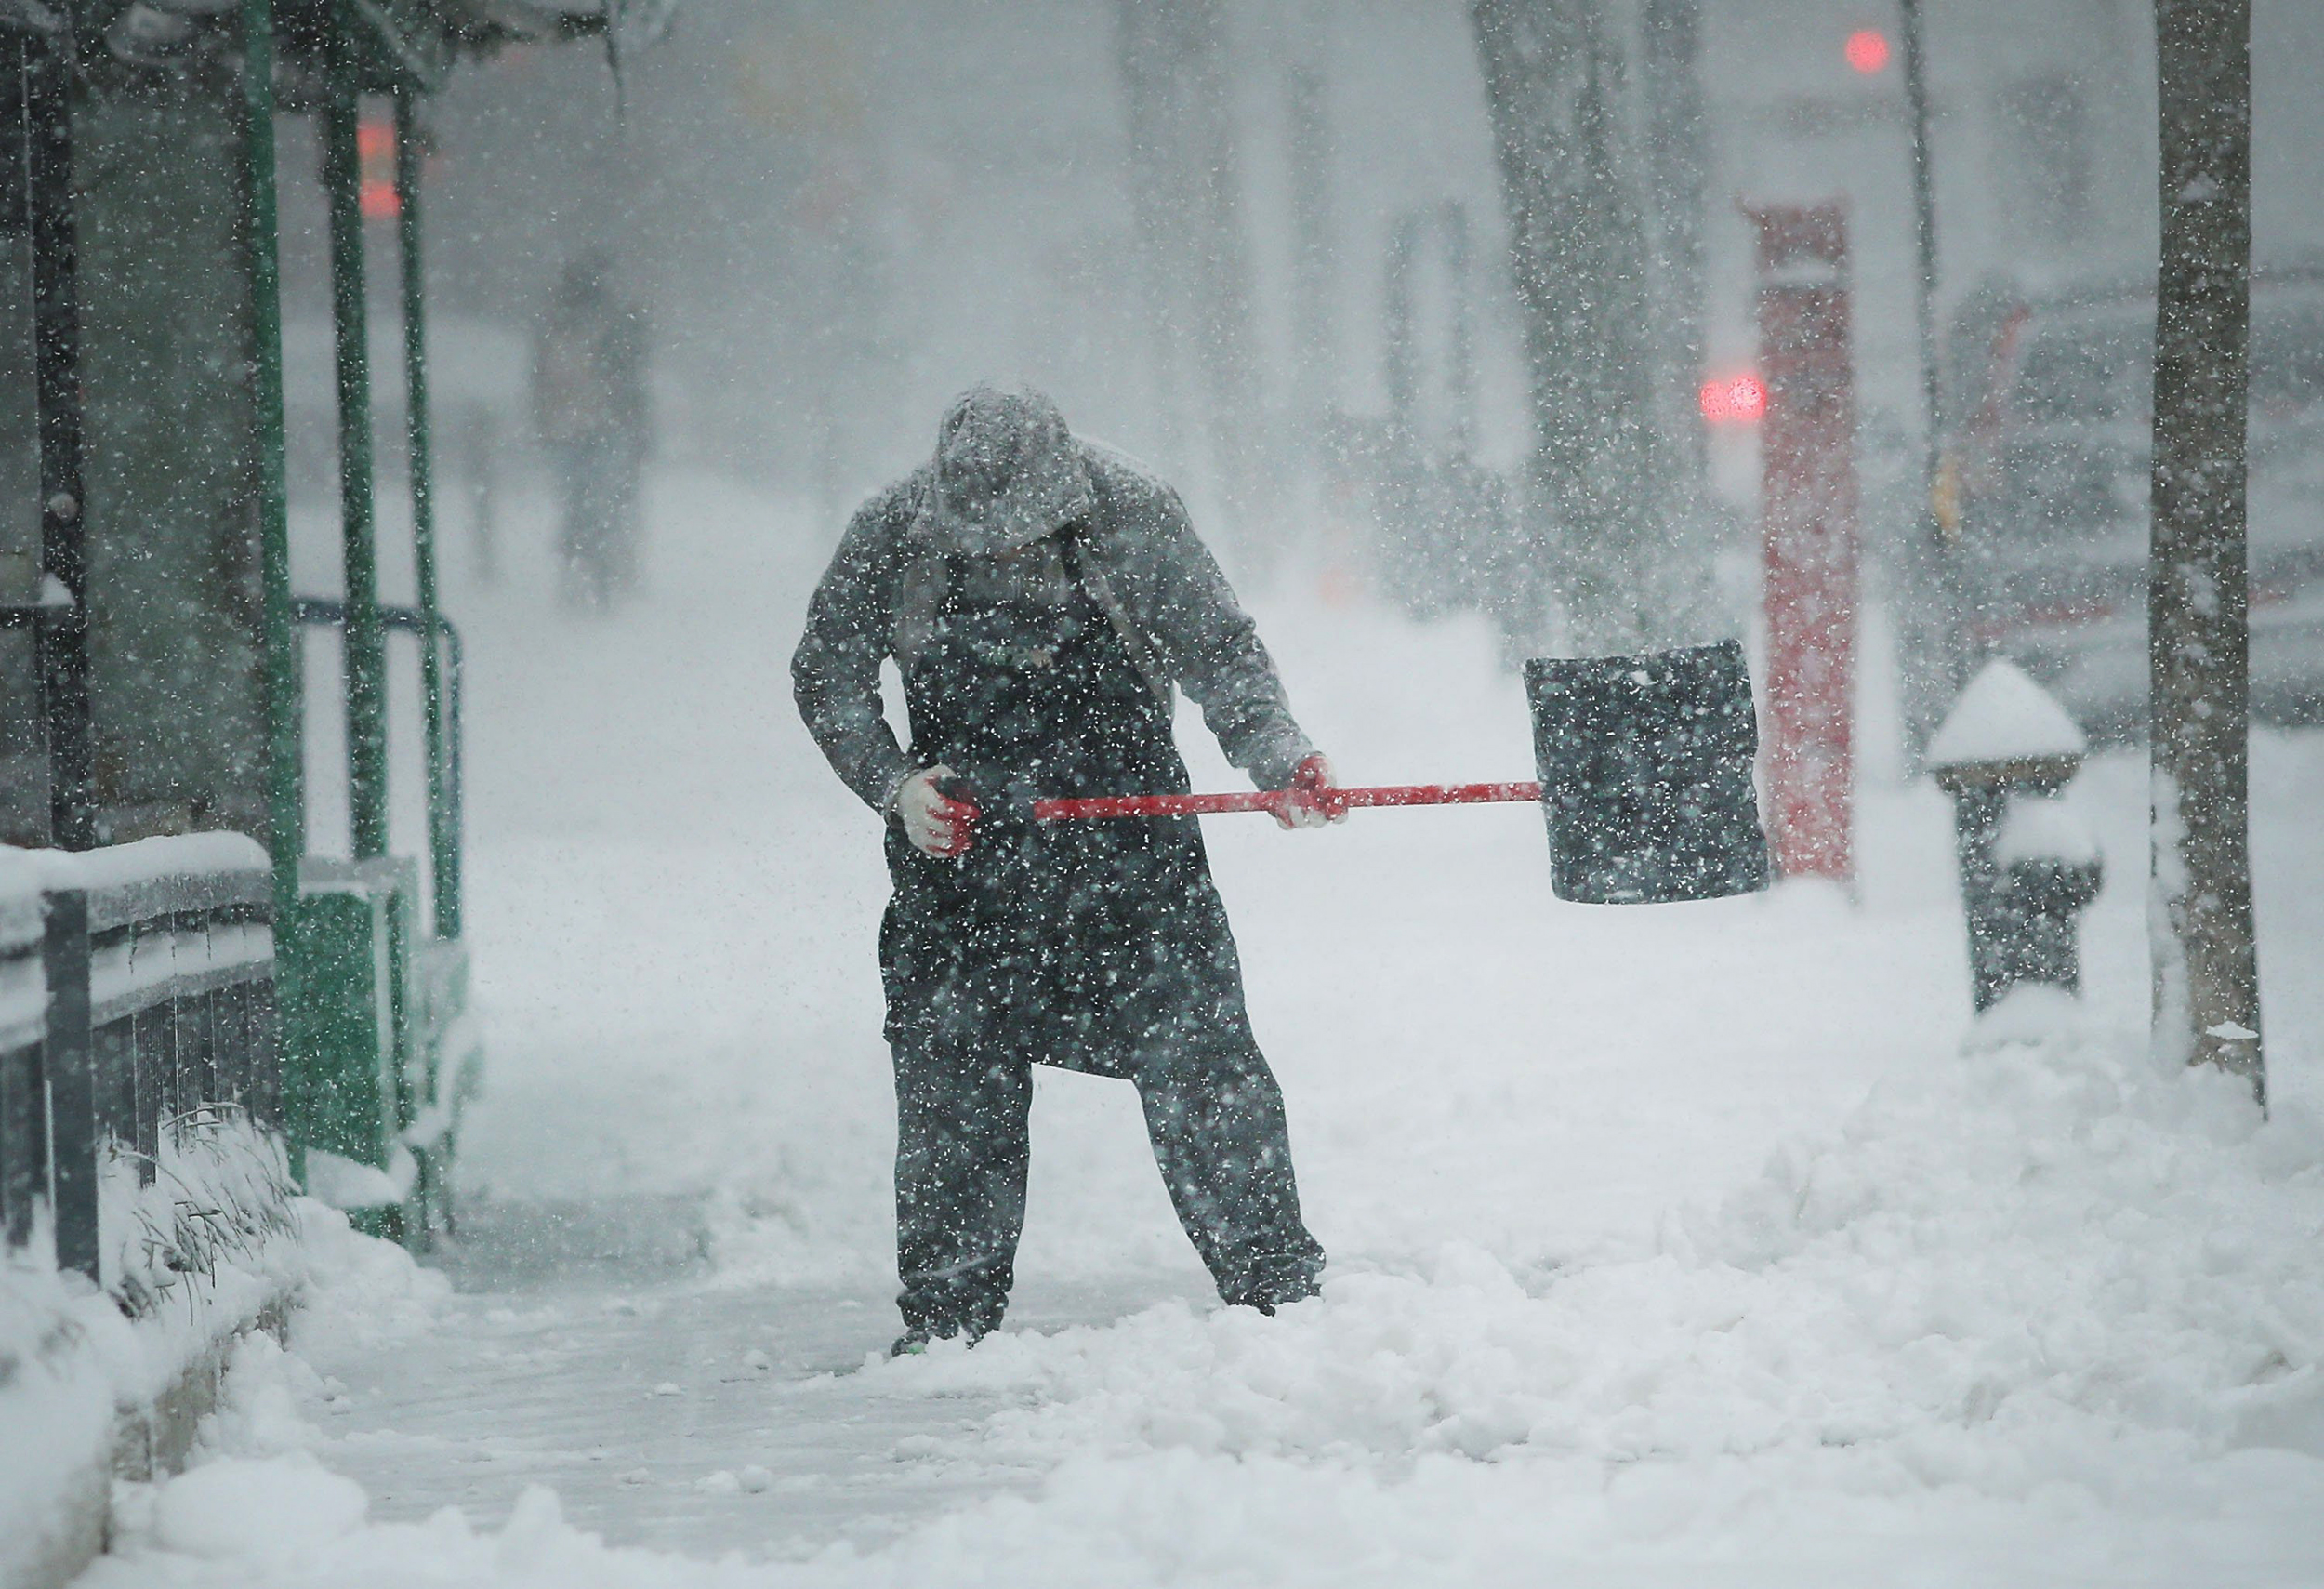 Shoveling Snow Can Kill Men, Canadian Study Finds